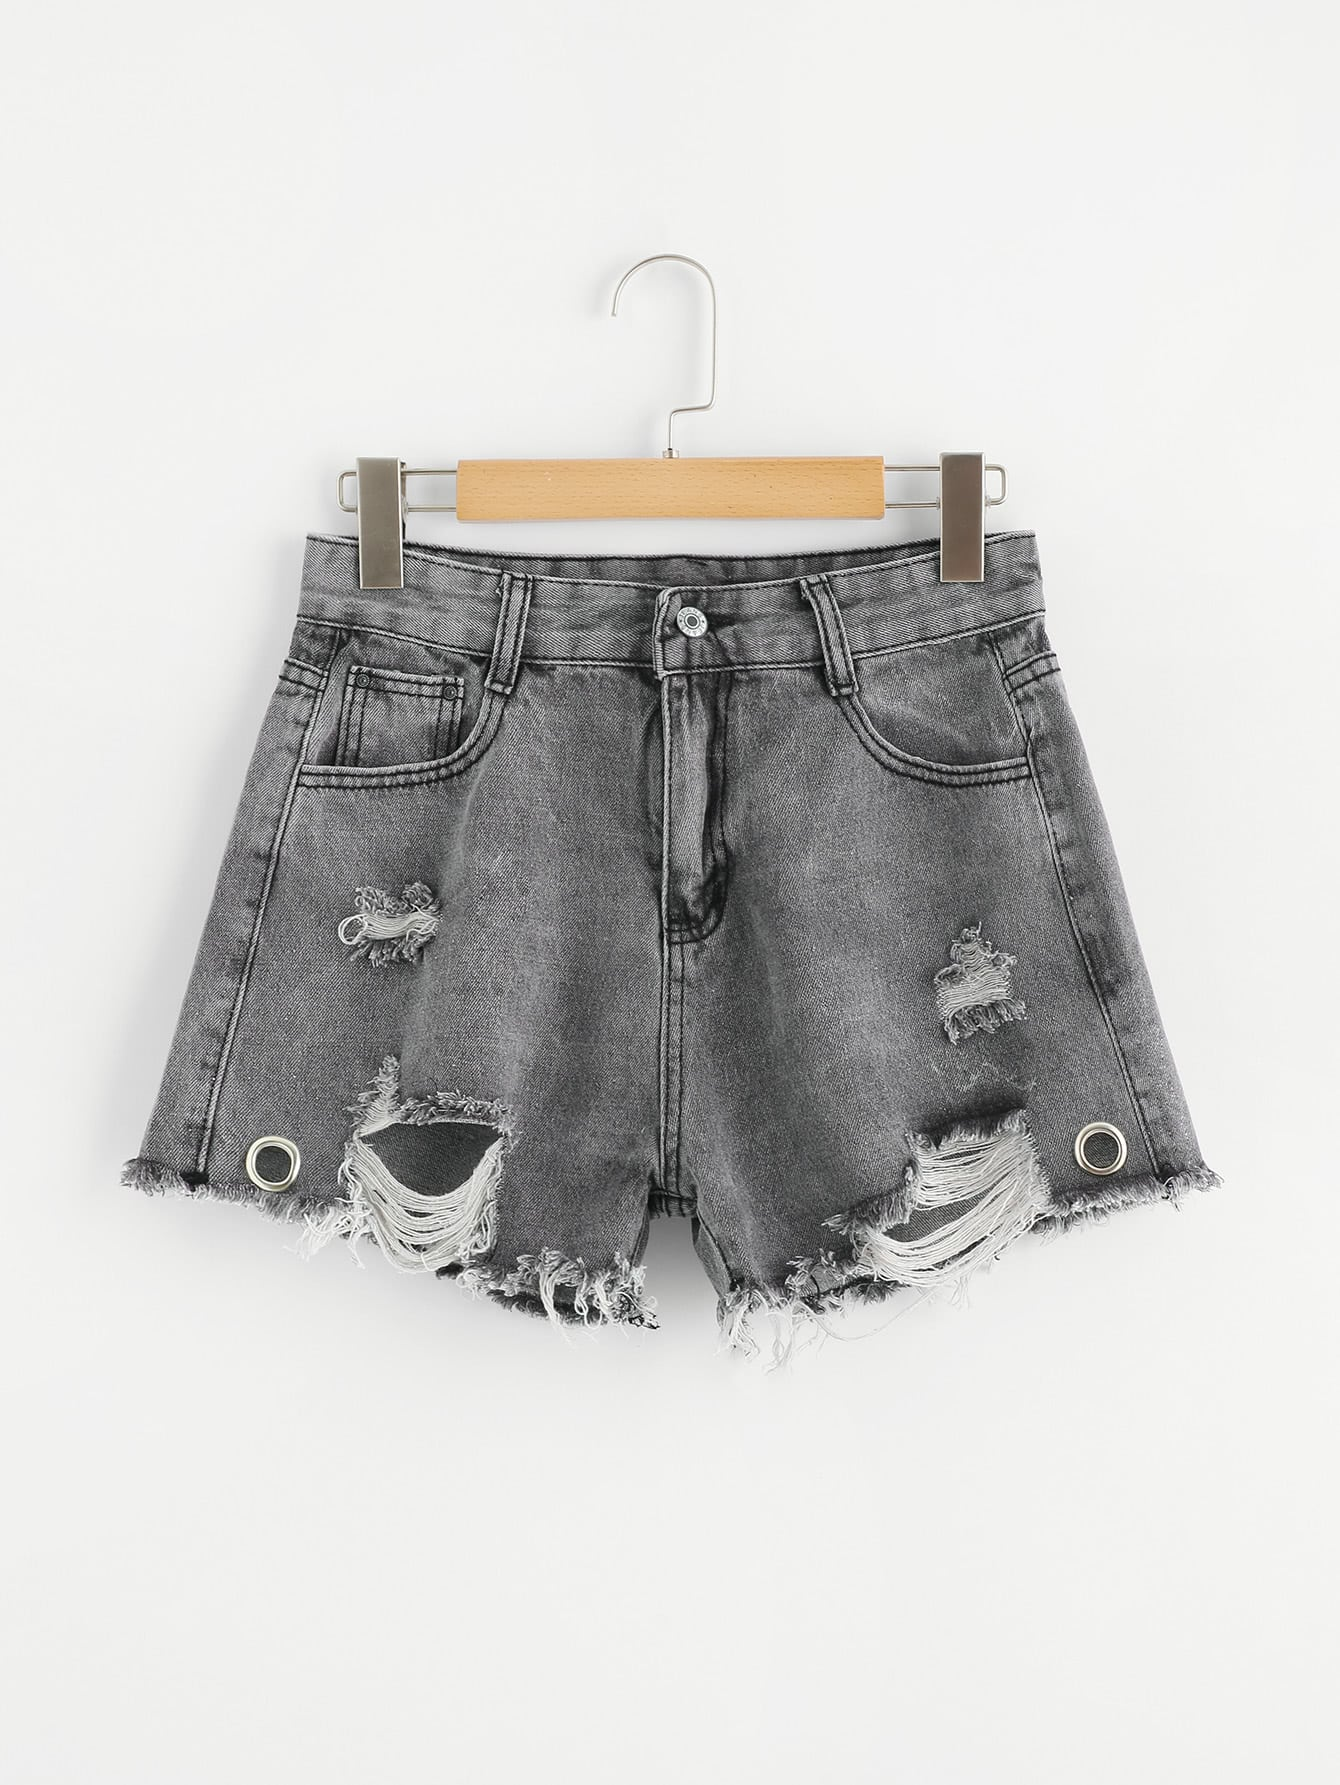 Raw Hem Denim Shorts raw hem ripeed denim shorts